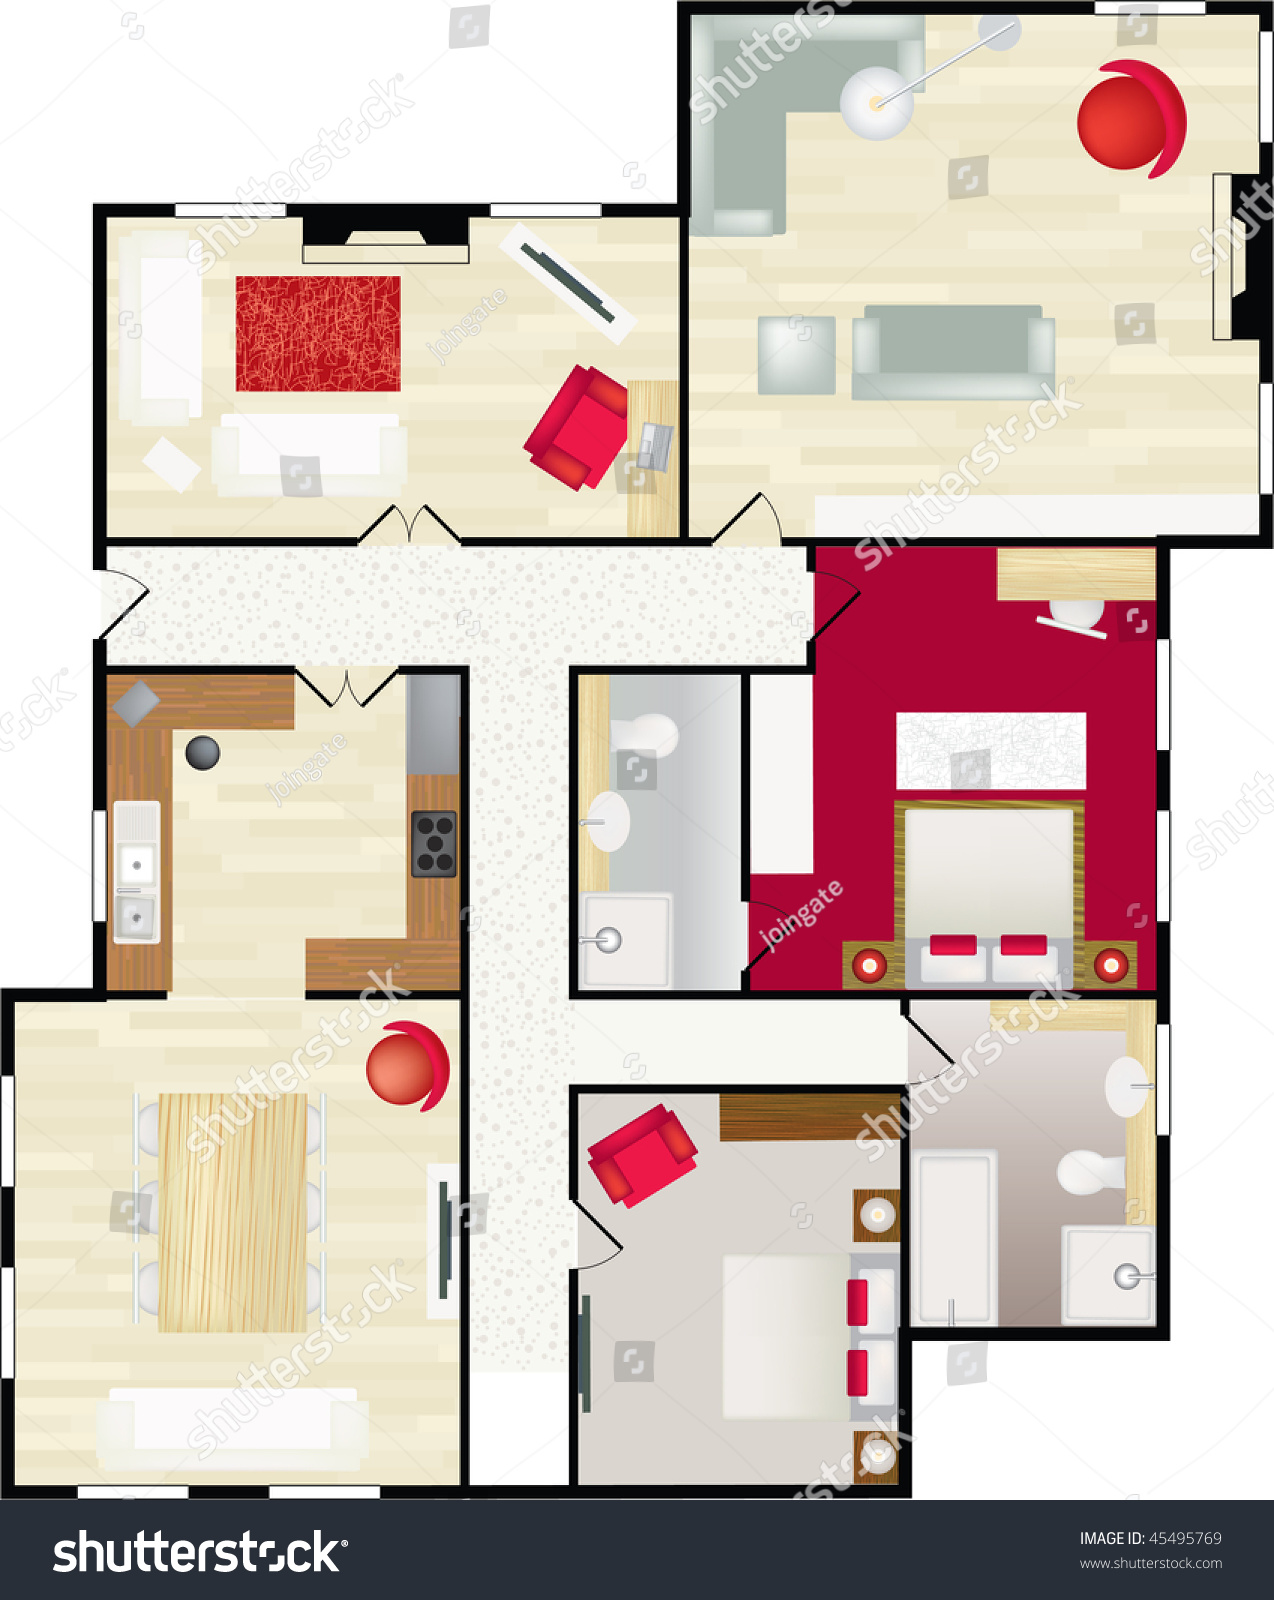 Typical floor plan of a house in color with furnishings for Typical house floor plan